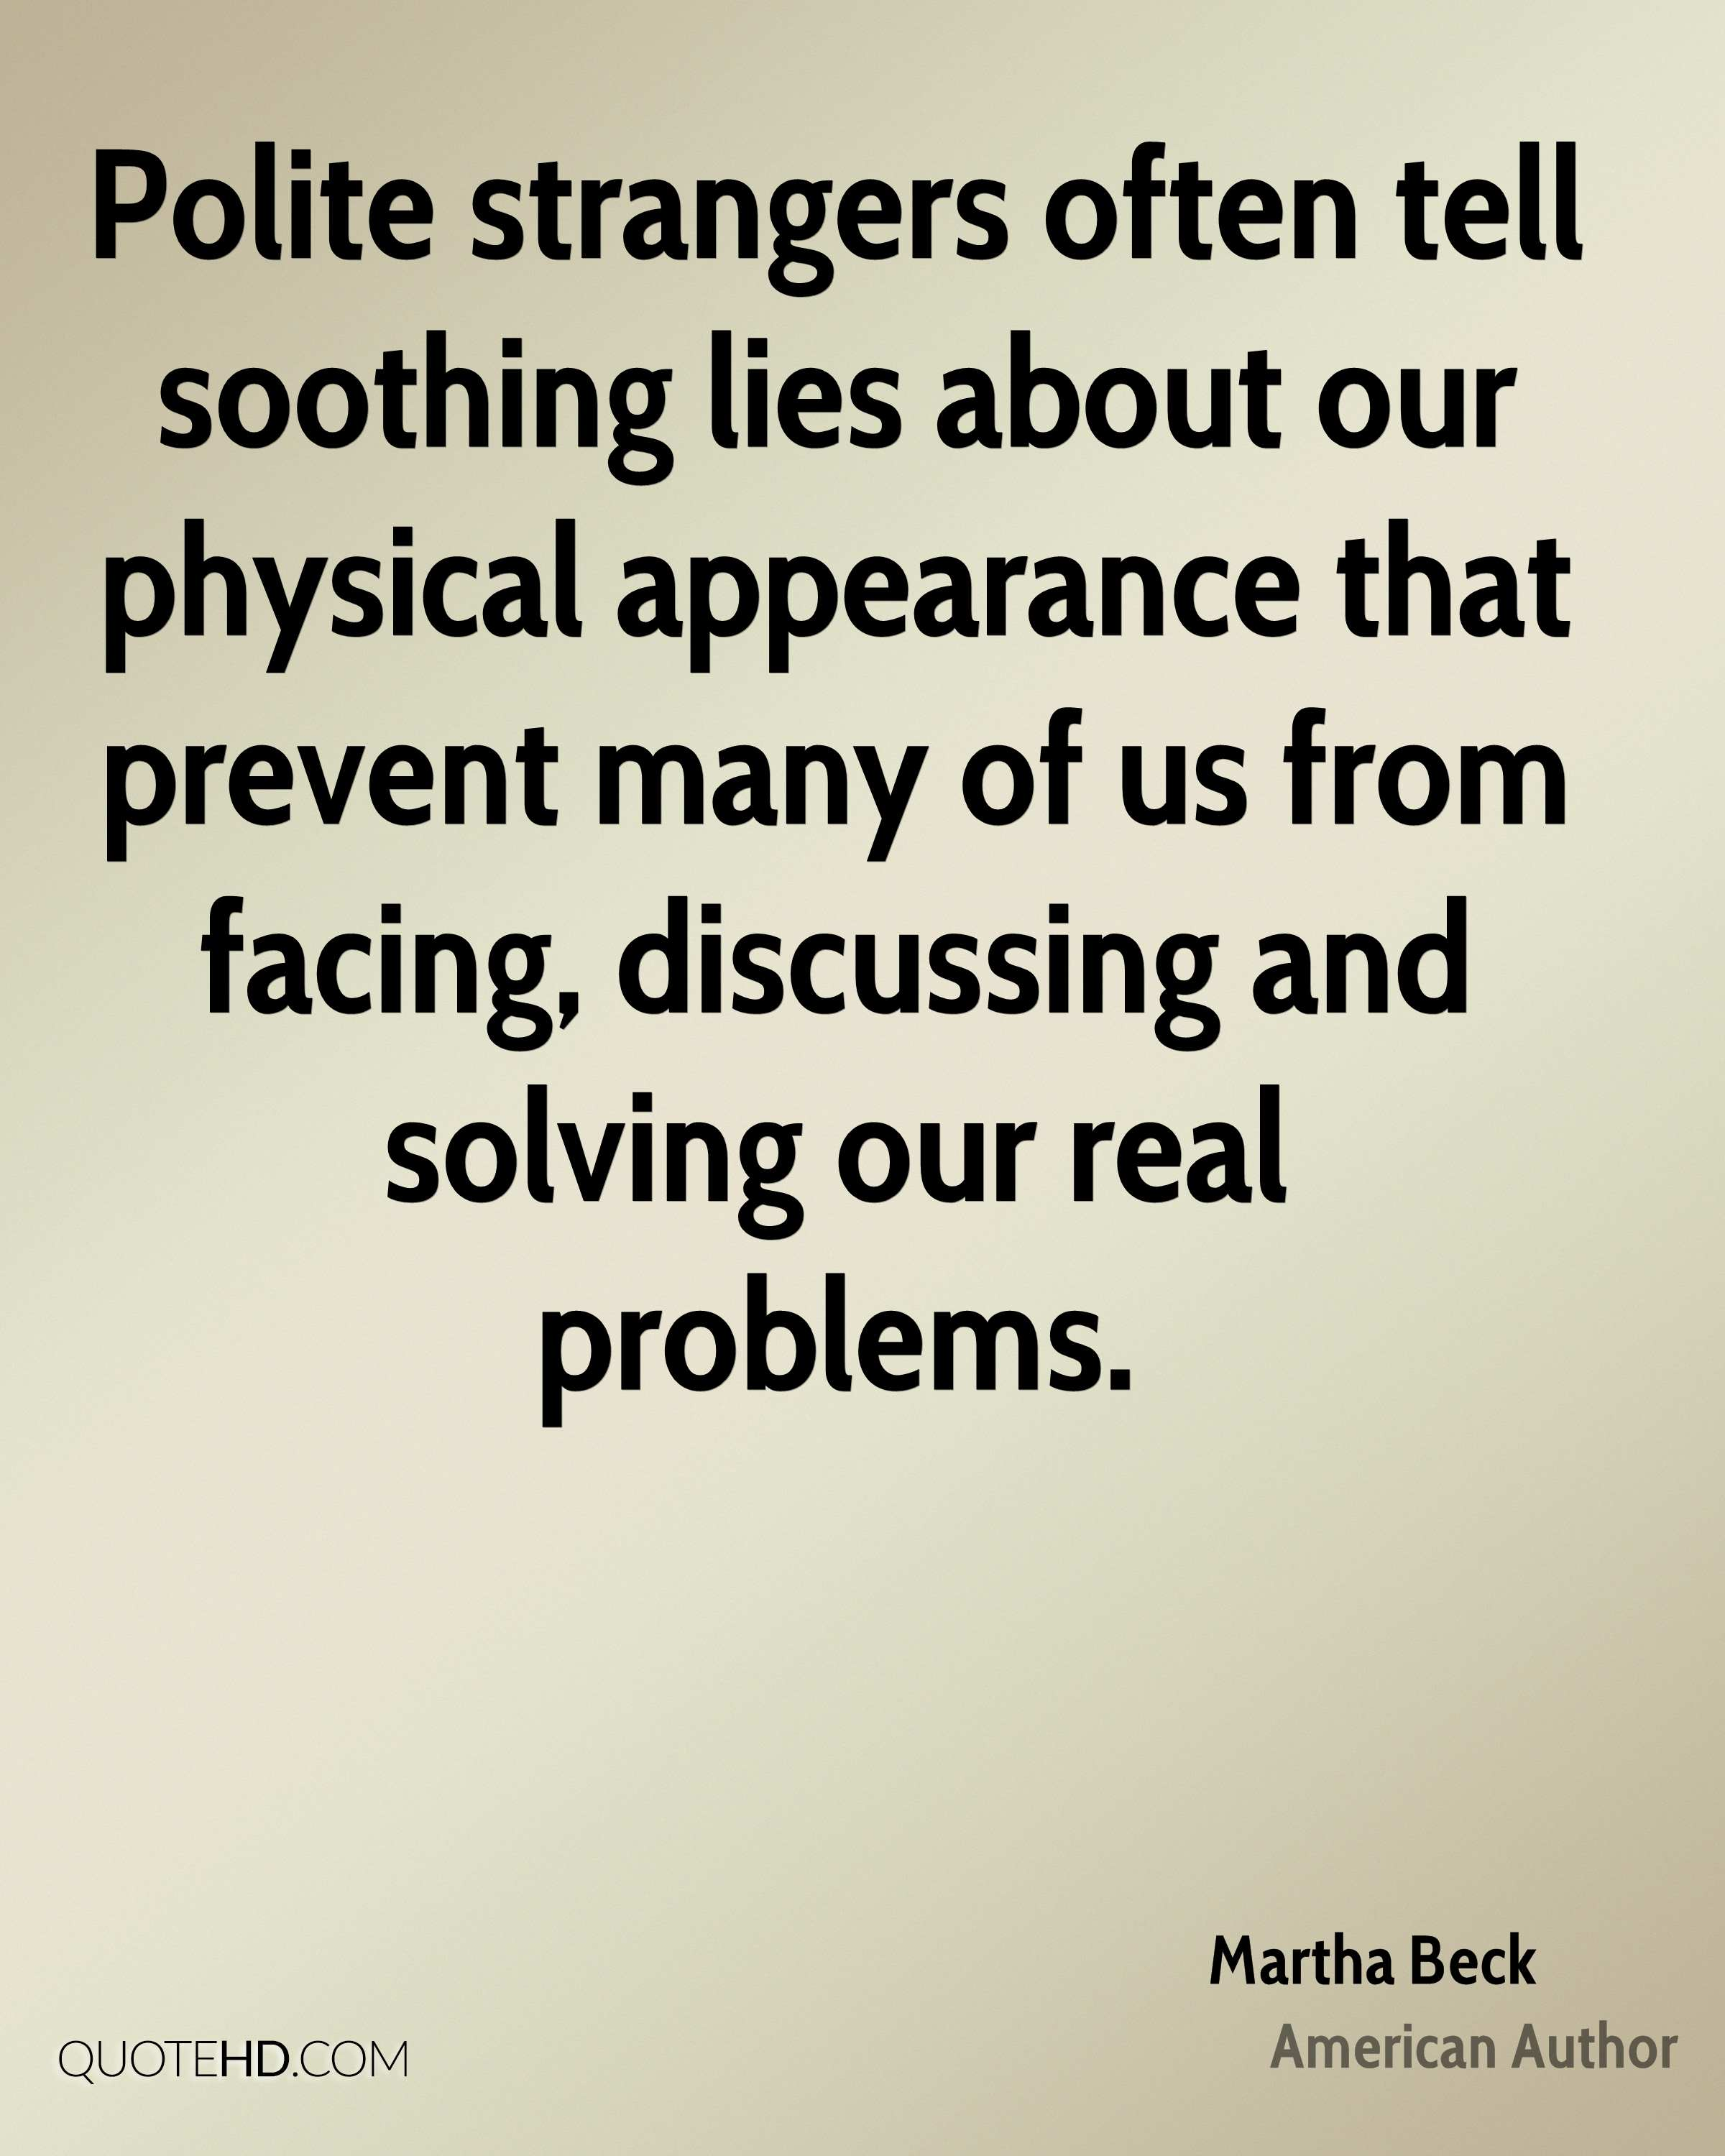 Polite strangers often tell soothing lies about our physical appearance that prevent many of us from facing, discussing and solving our real problems.